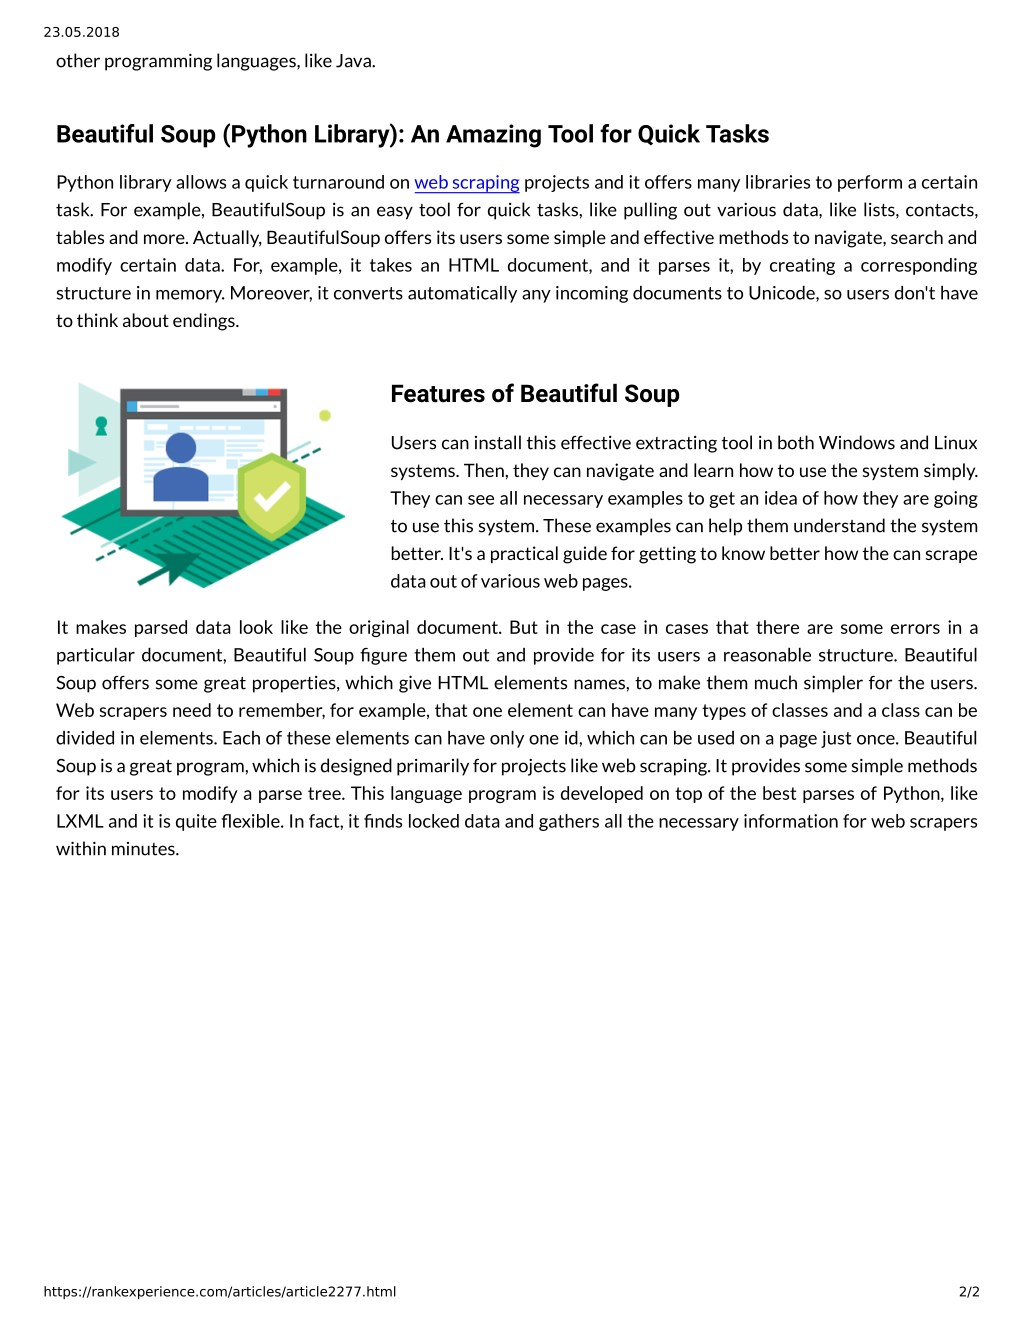 PPT - Semalt: Web Scraping With Beautiful Soup PowerPoint